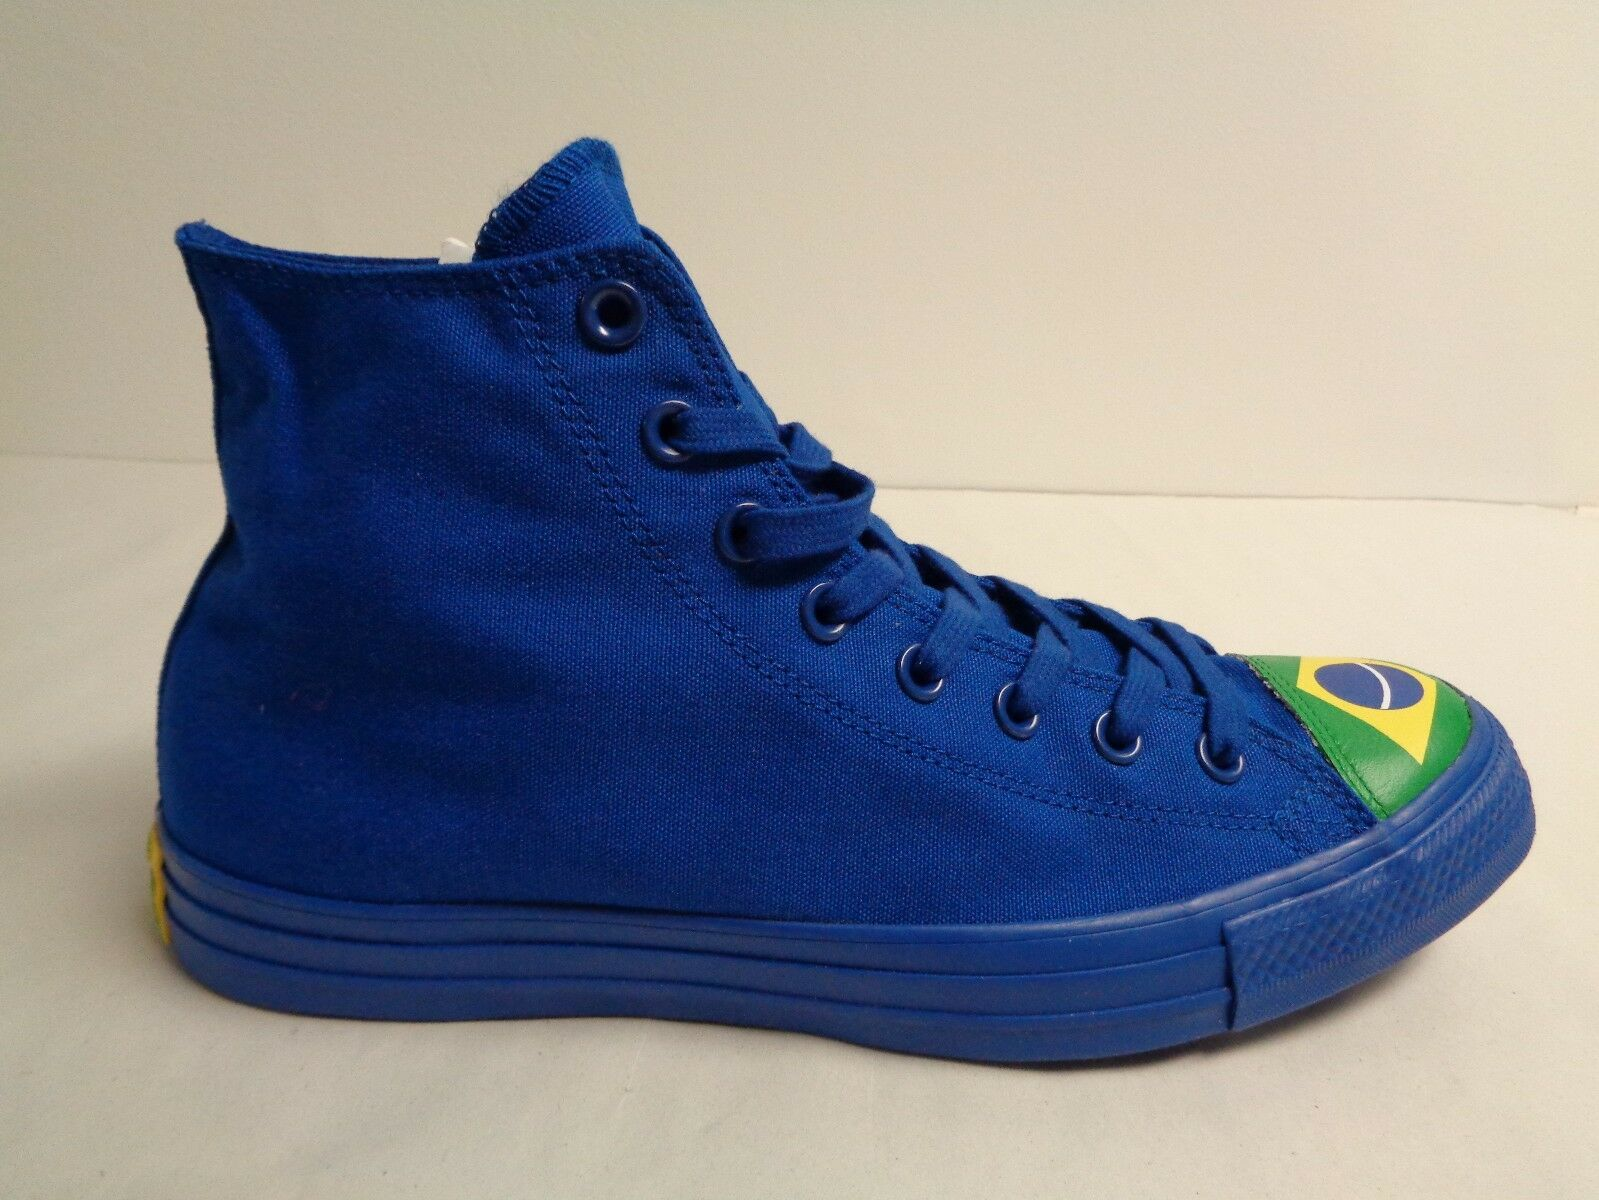 Converse Size 12 Mens CTAS HI bluee bluee bluee Green Brazil Flag Sneakers New Unisex shoes 57cb6c